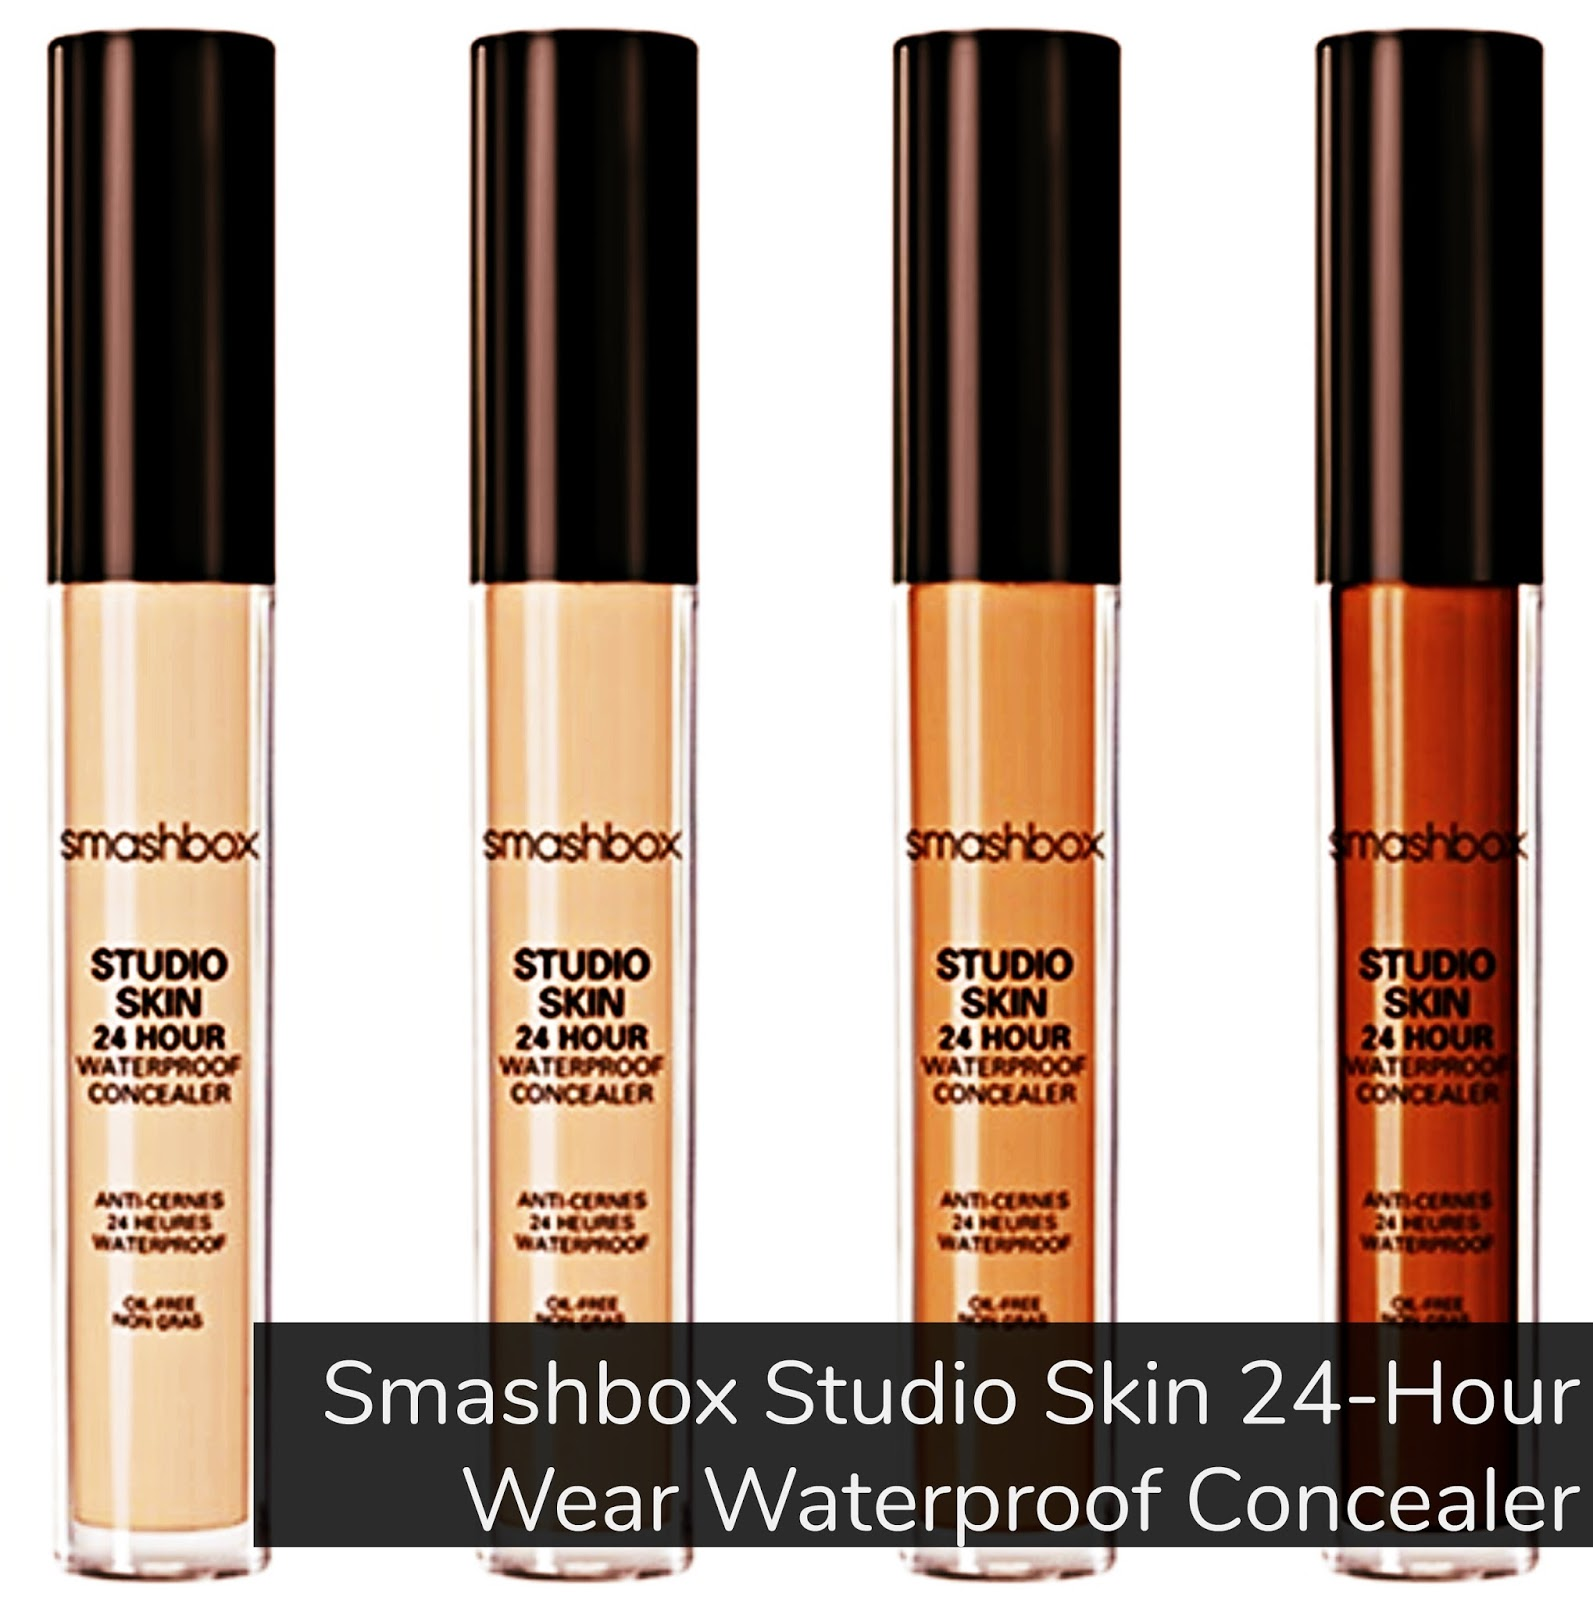 Click here to buy Smashbox Studio Skin 24-Hour Wear Waterproof Concealer for blemish-free skin